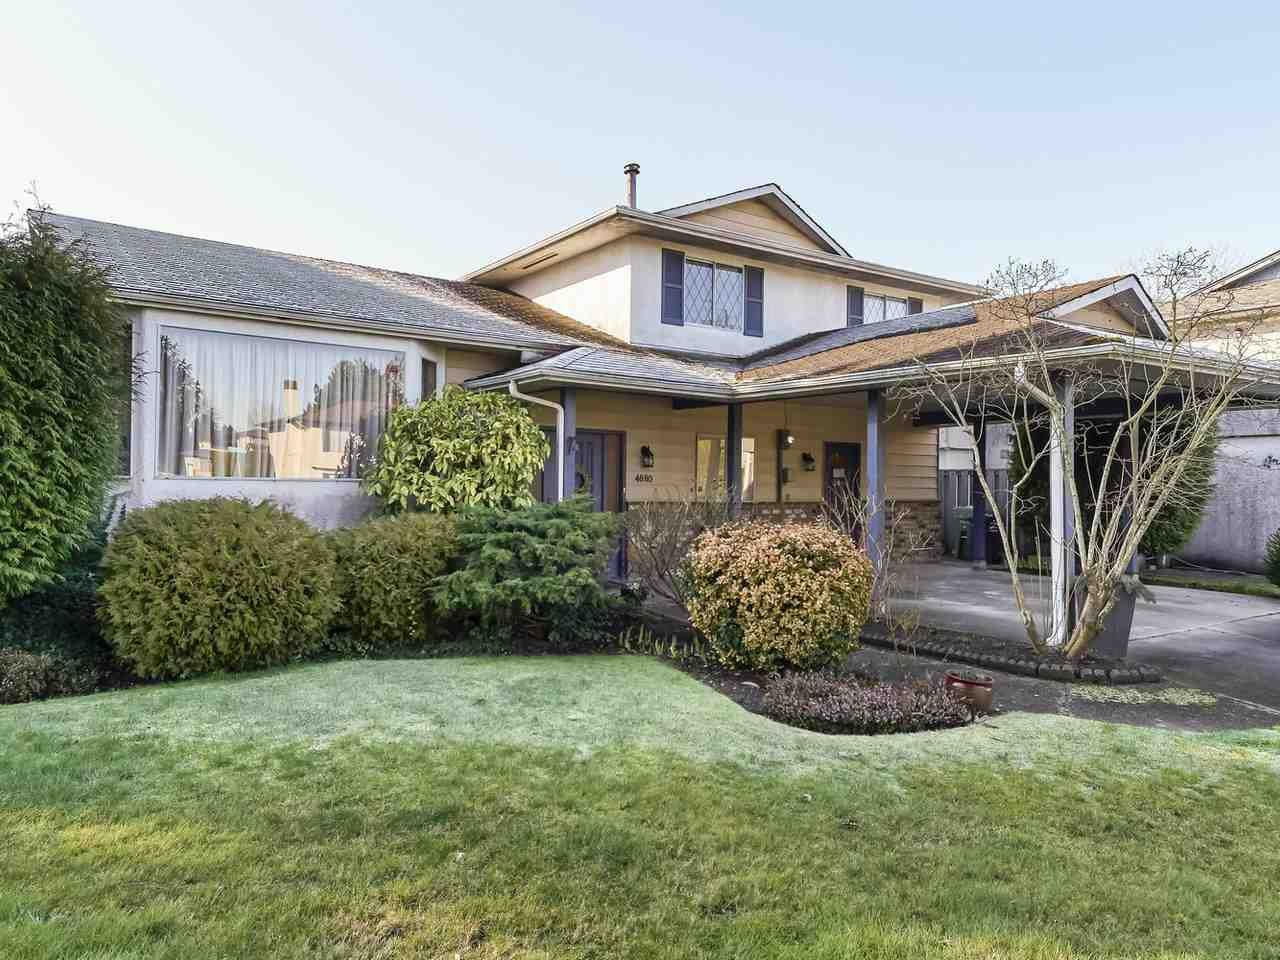 Photo 3: Photos: 4880 FORTUNE AVENUE in Richmond: Steveston North House for sale : MLS®# R2435063